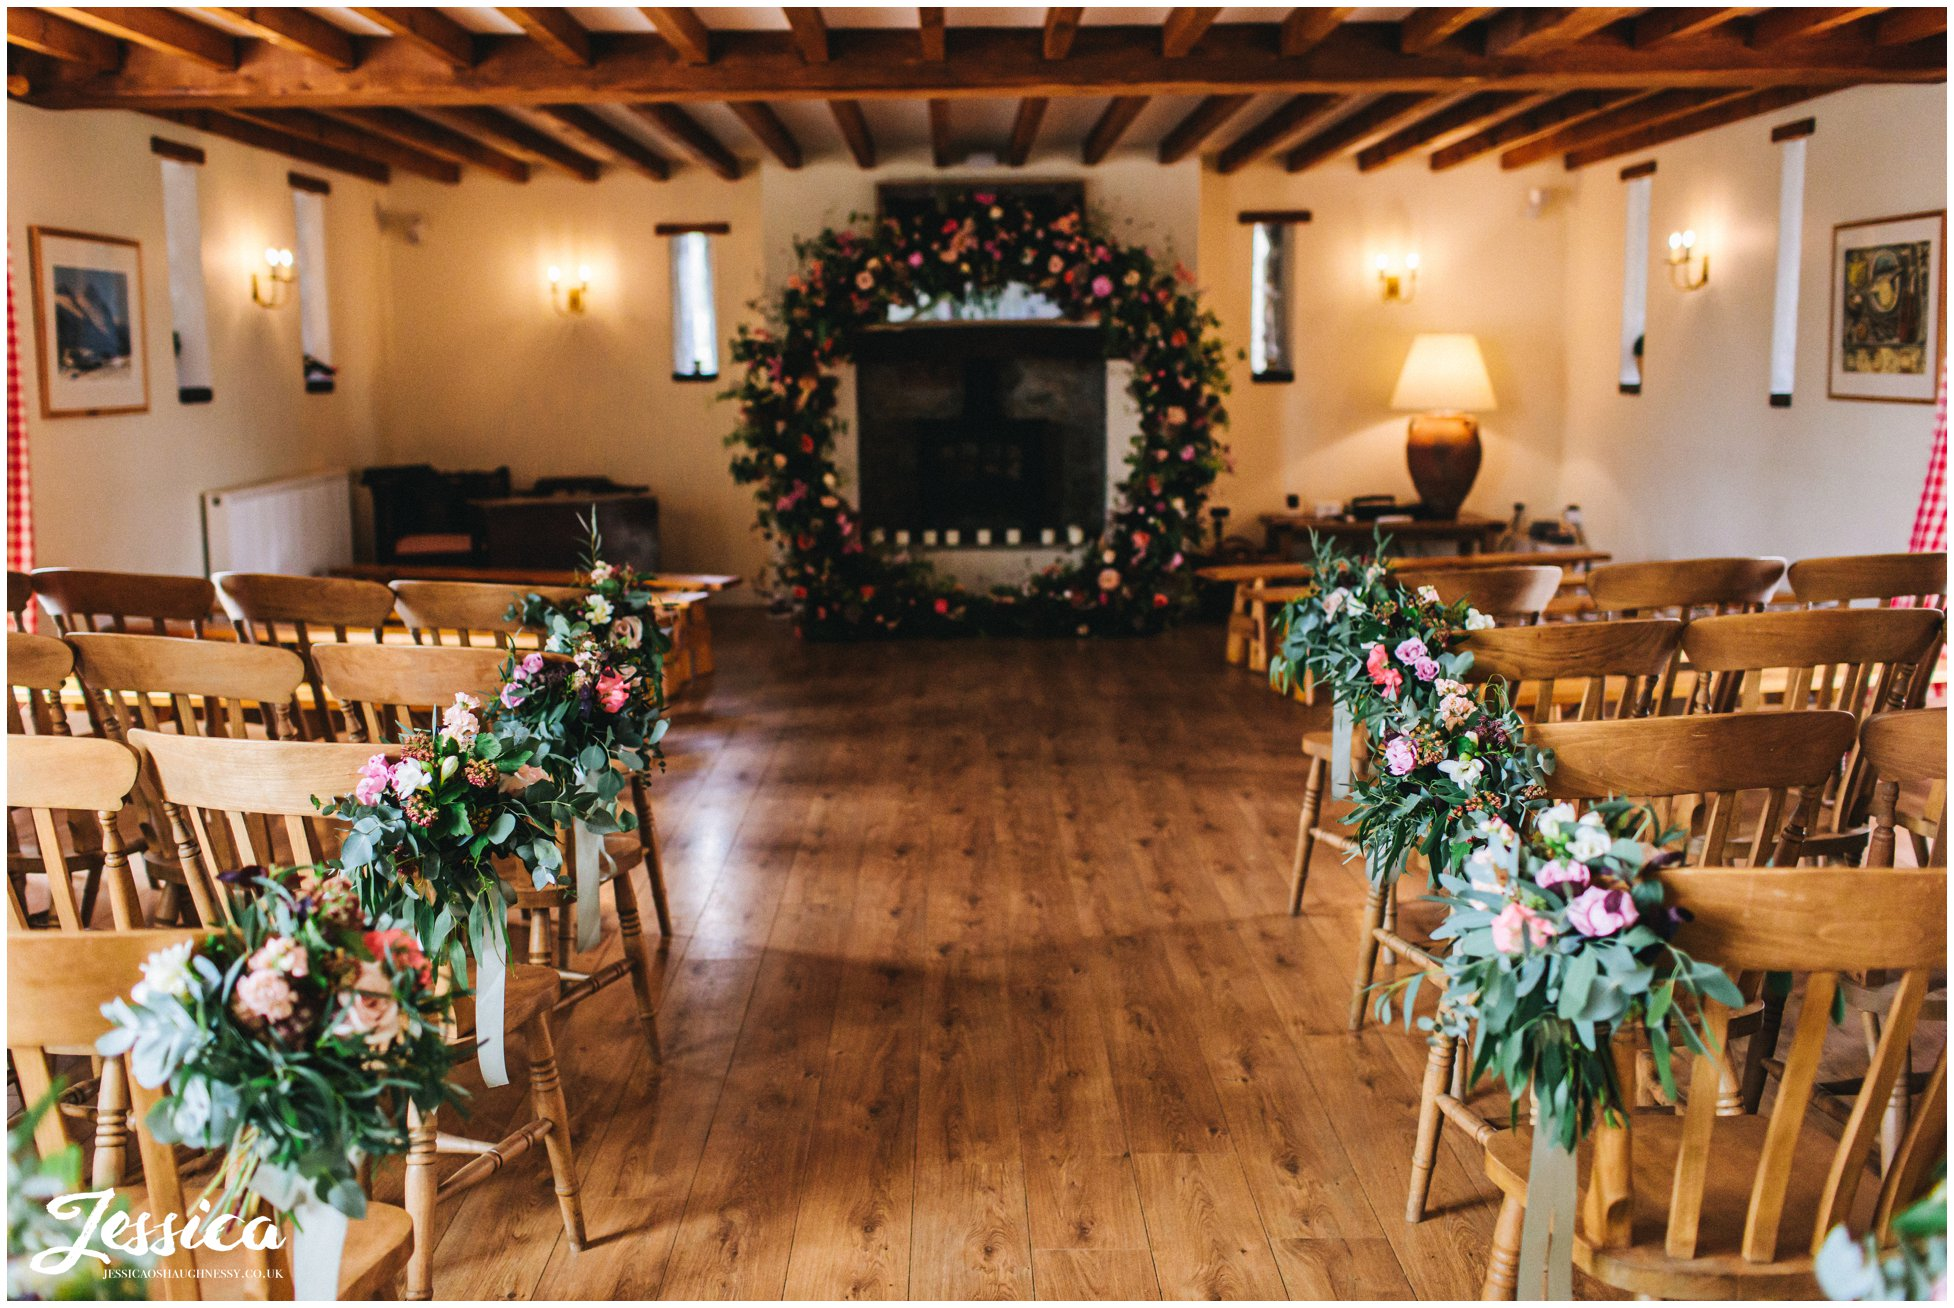 the ceremony room at the outbuildings is decorated in flowers